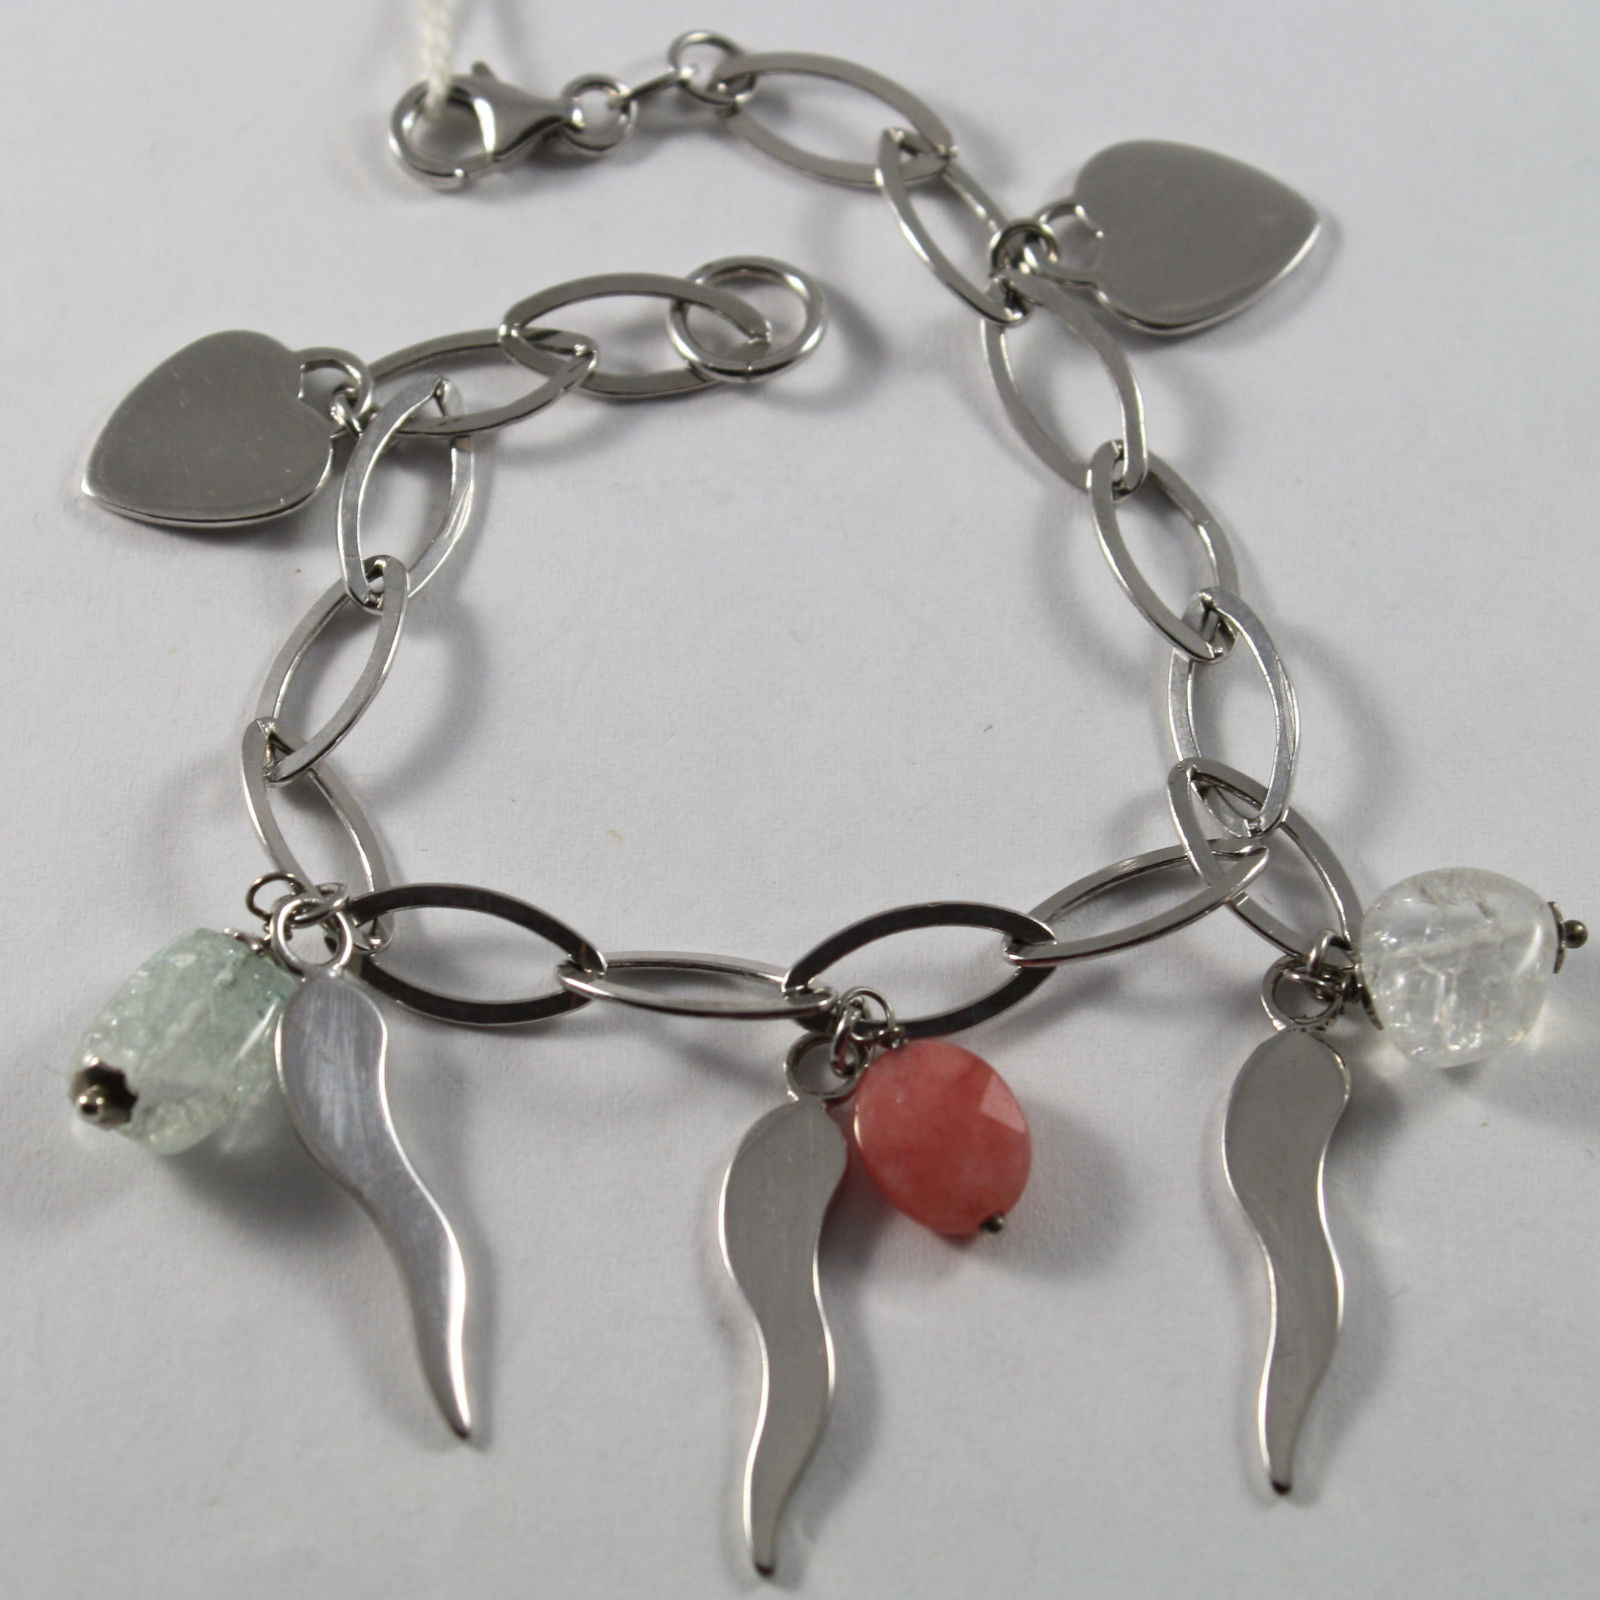 .925 RHODIUM SILVER BRACELET WITH ROSE JADE, CRACK CRISTAL , HEARTS AND HORNS